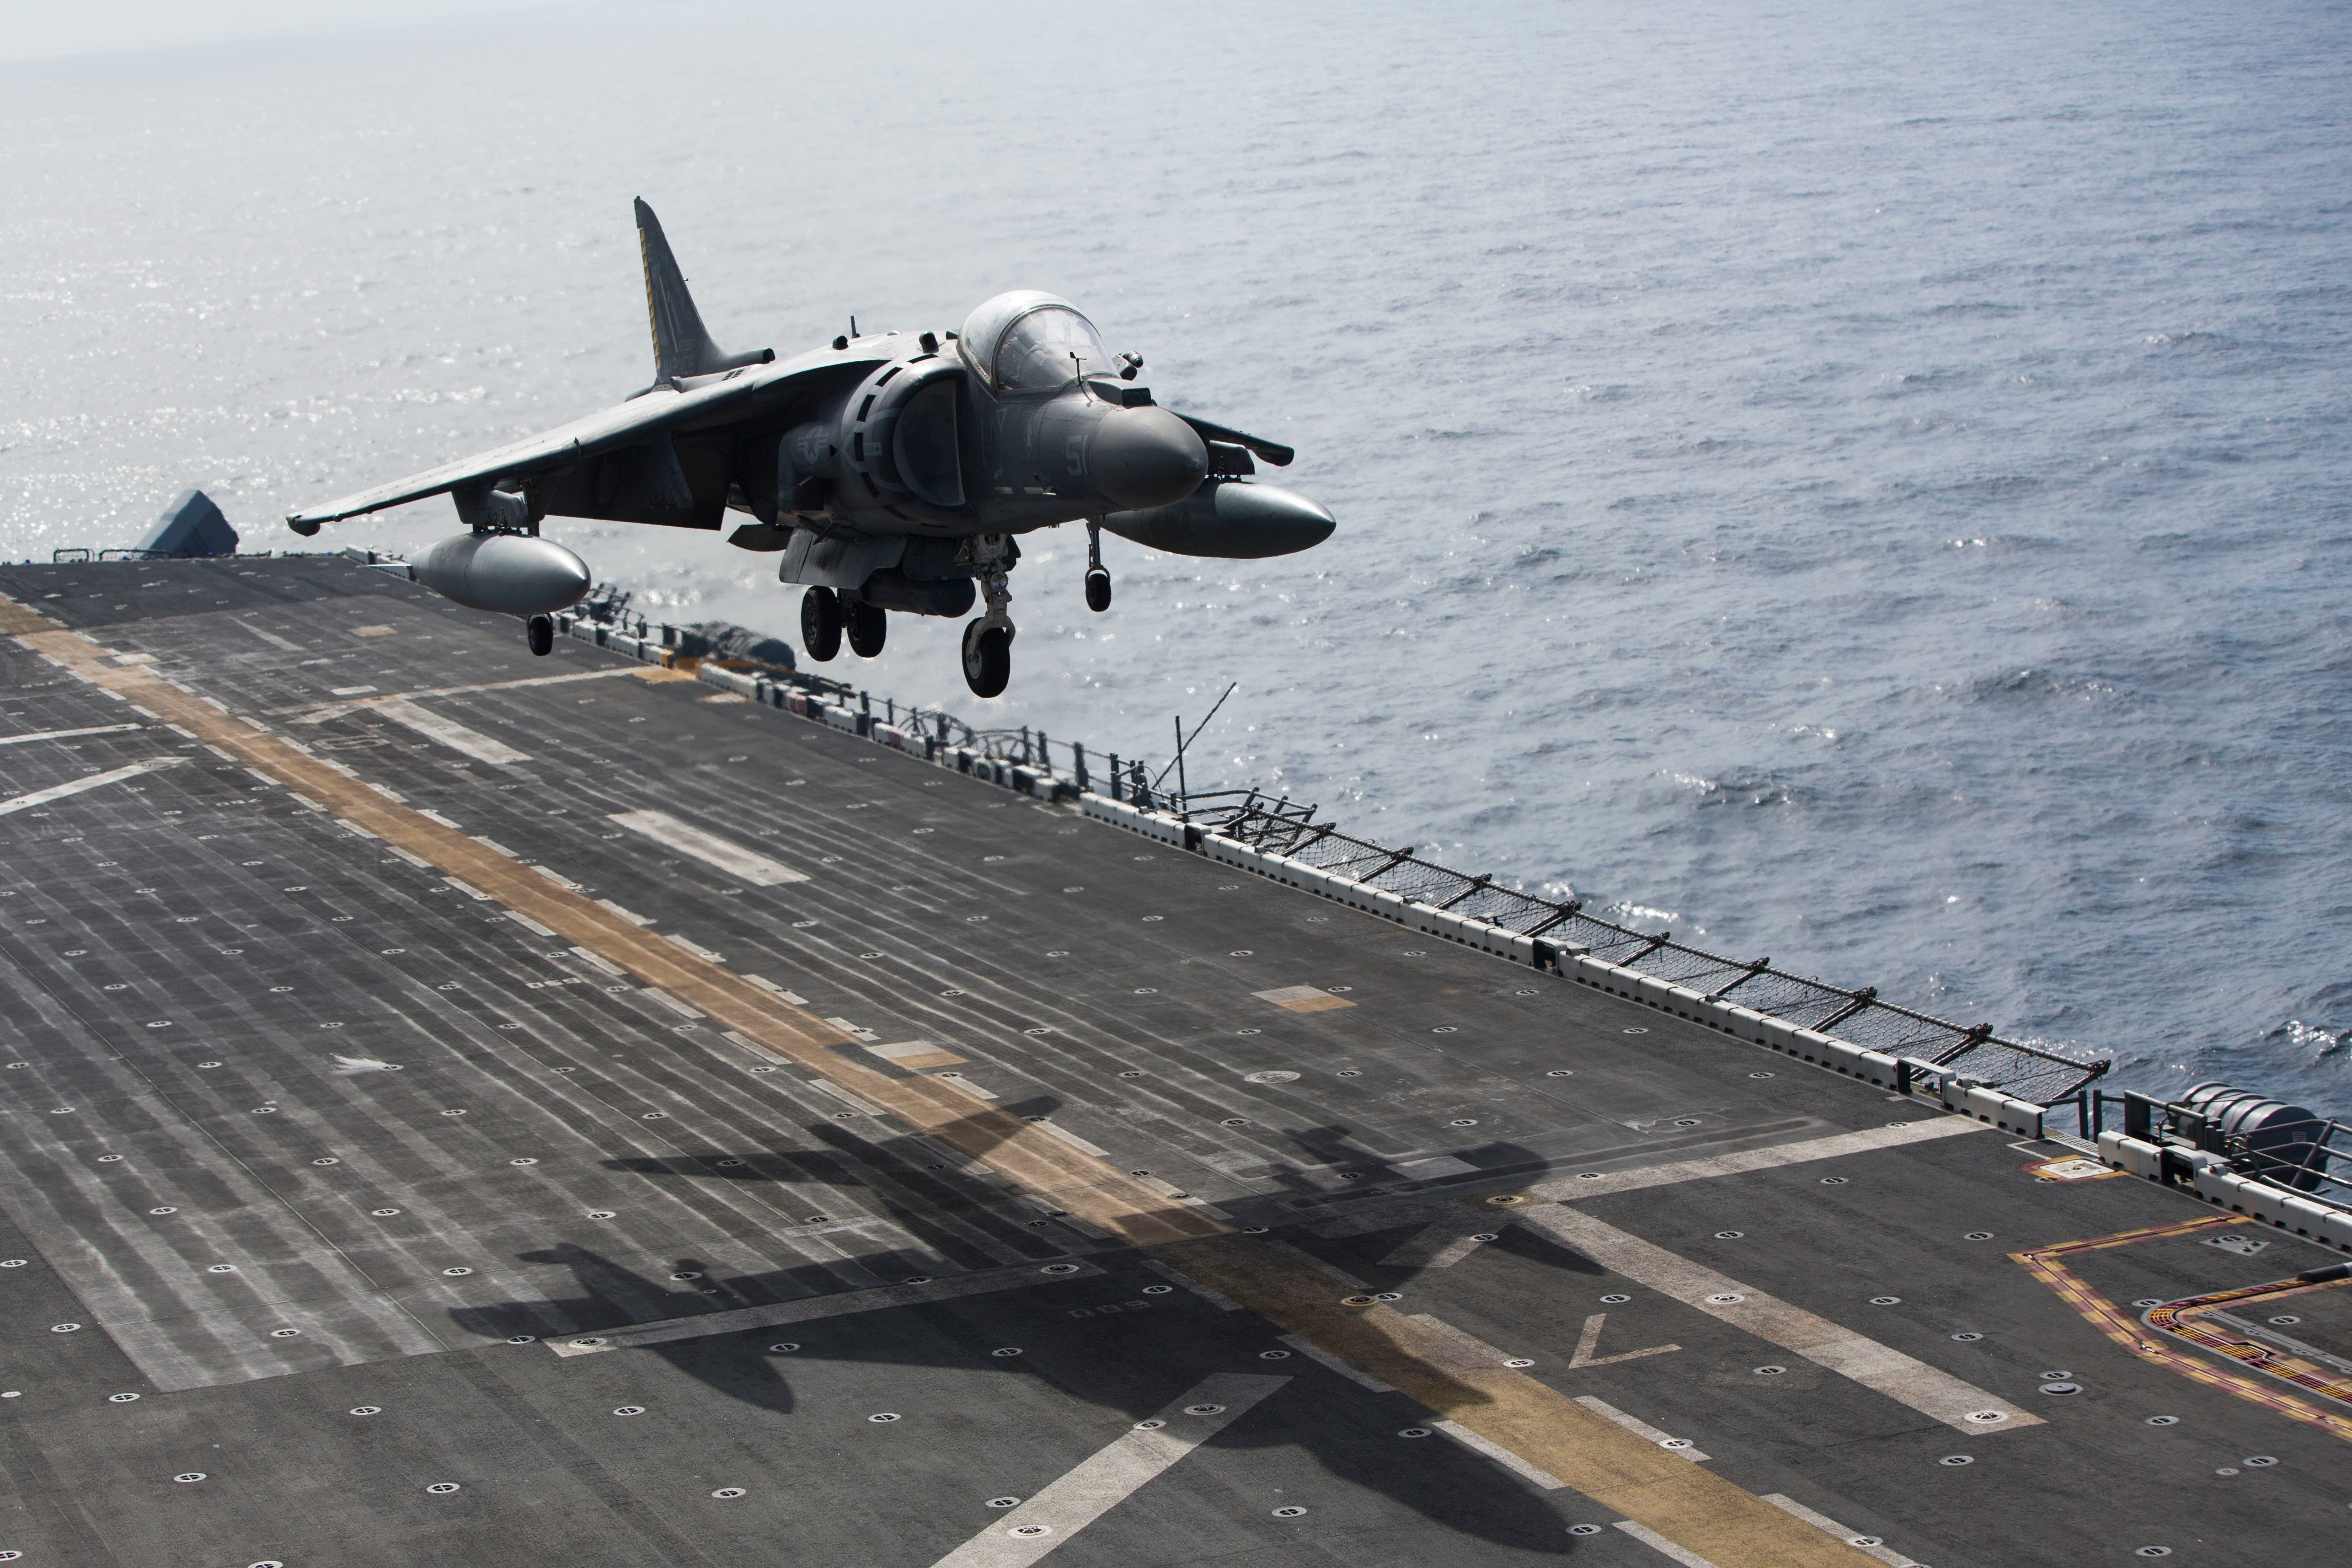 An AV-8B Harrier II with Marine Medium Tiltrotor Squadron 264 (Reinforced), 22nd Marine Expeditionary Unit (MEU), lands on the flight deck of the amphibious assault ship USS Wasp (LHD-1) on July 18, 2016. US Marine Corps